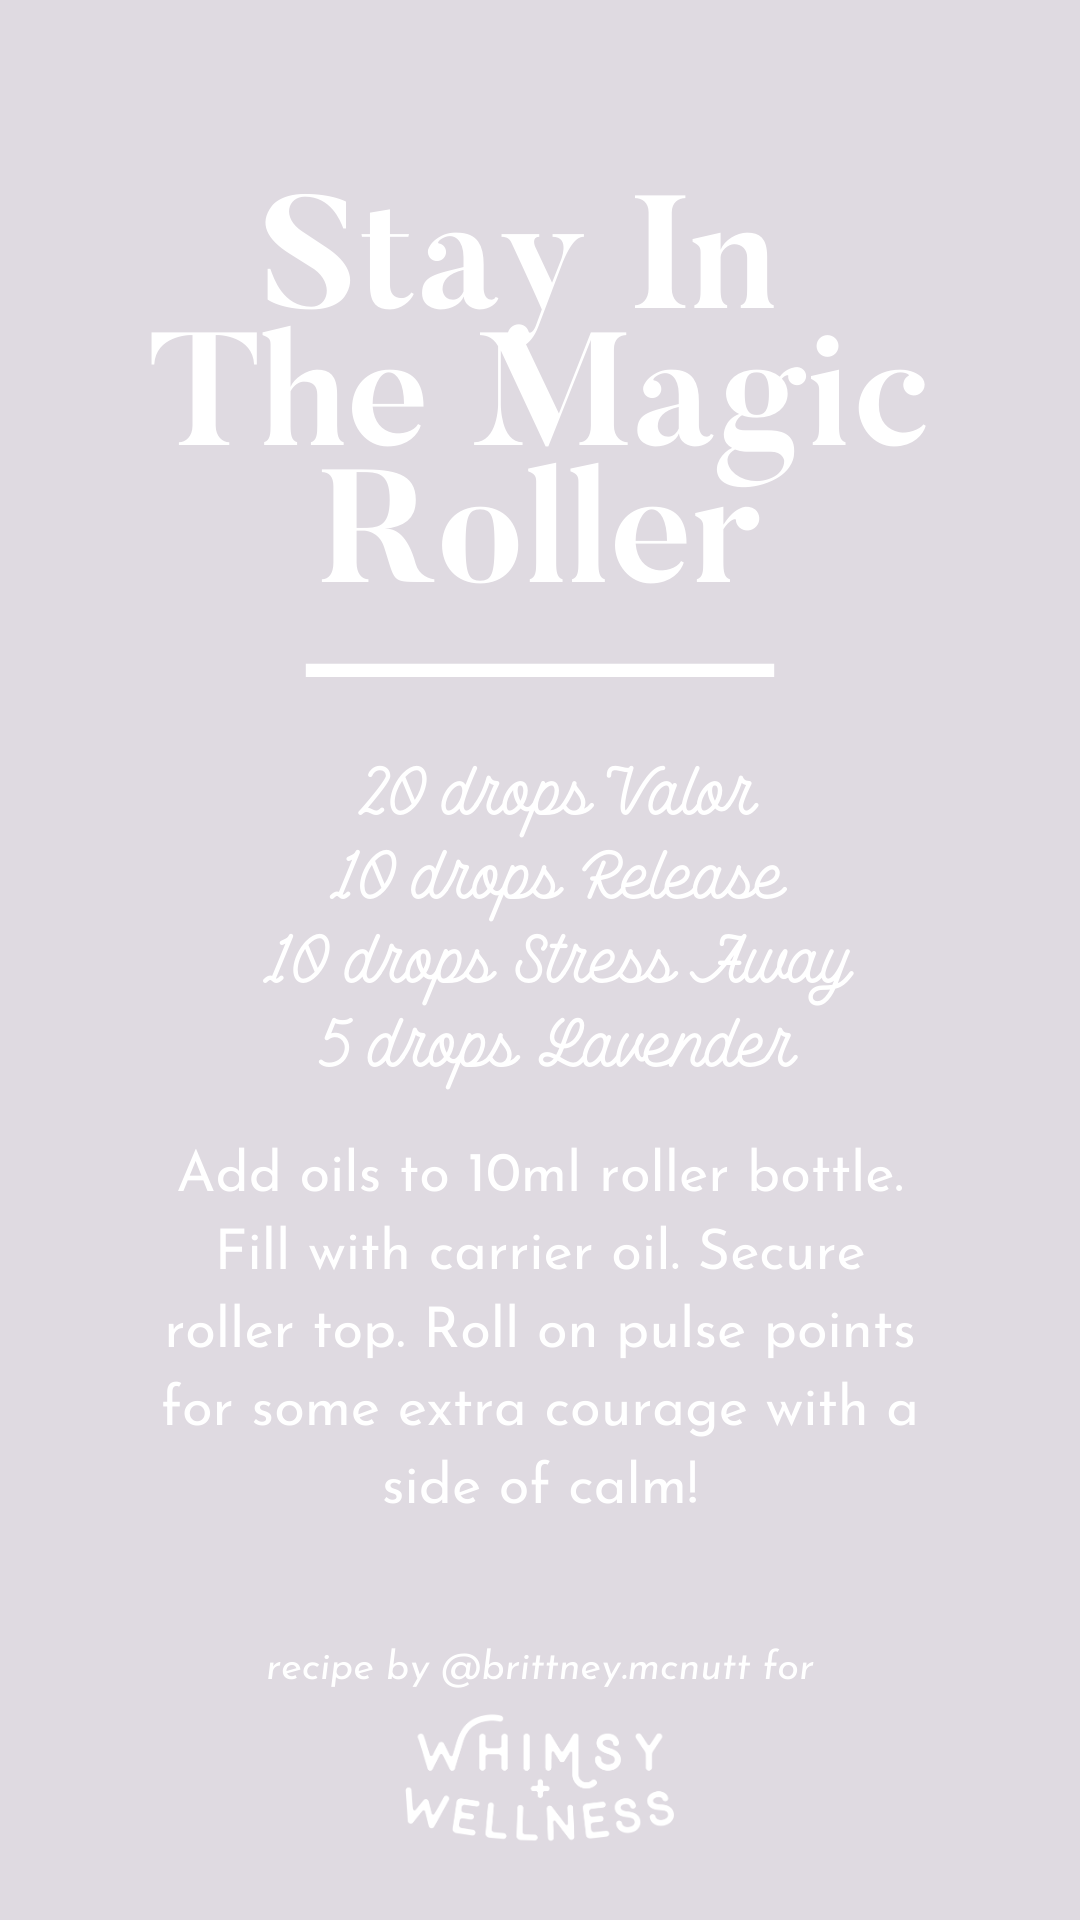 Stay in the magic roller recipe blend using Young Living essential oils